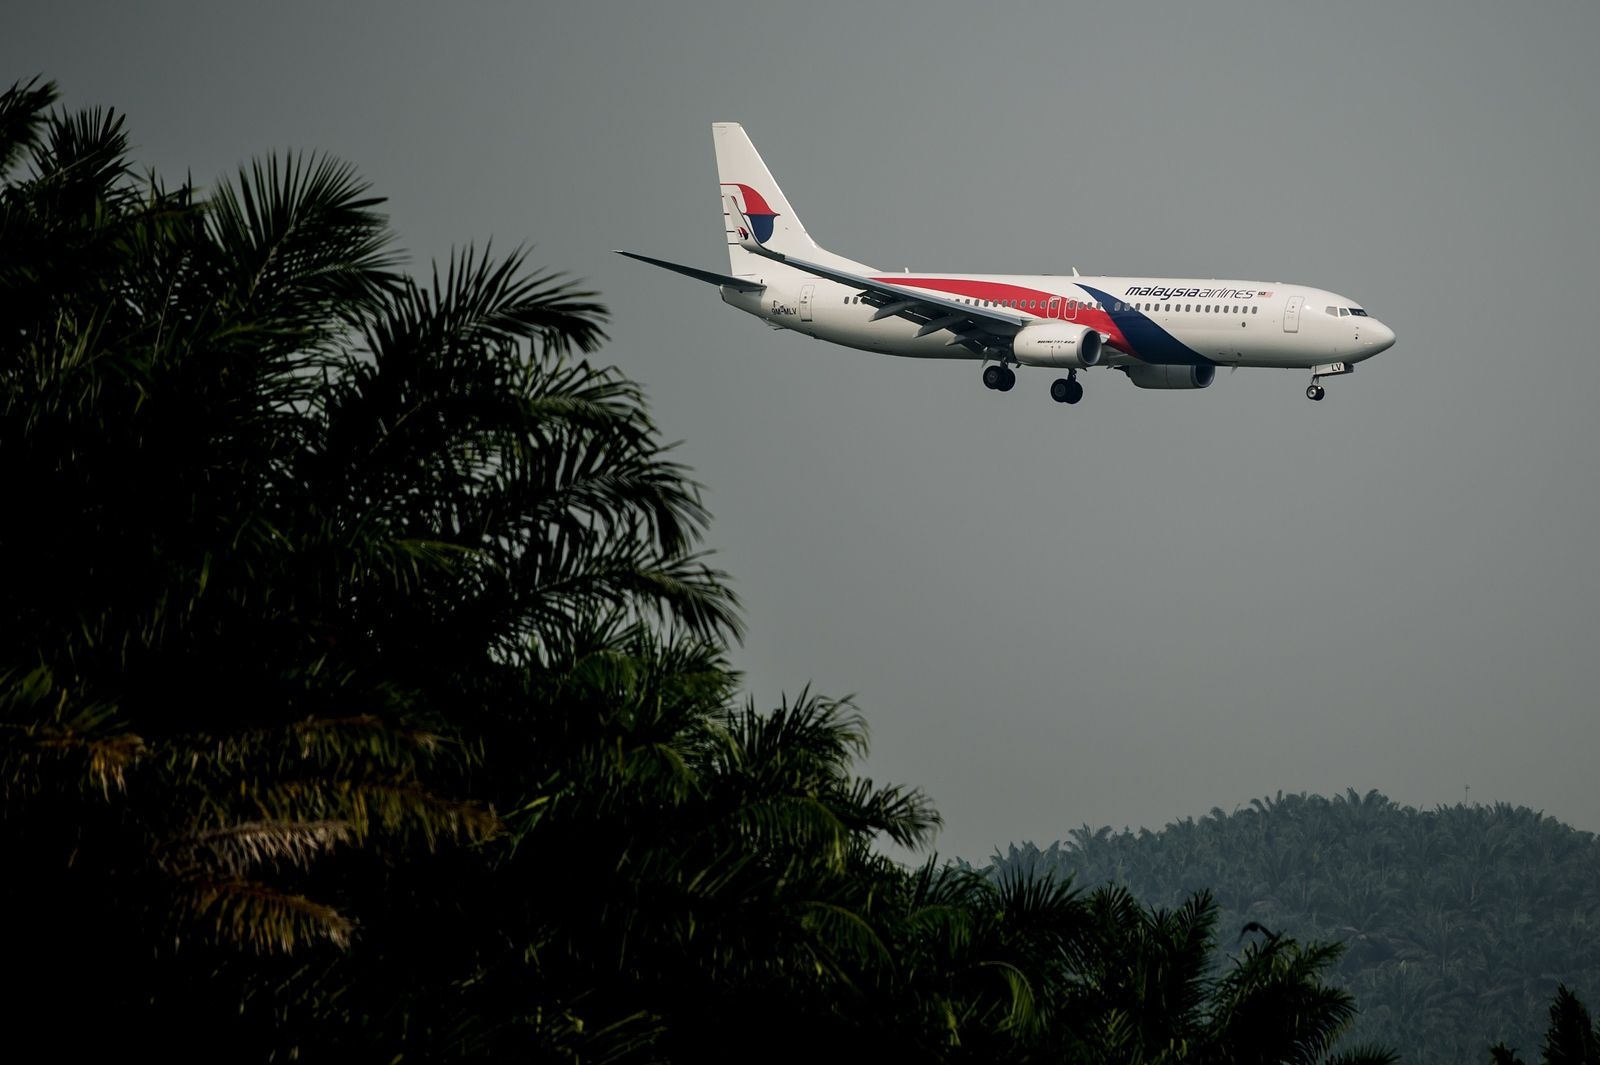 MH370 / Malaysia Airlines